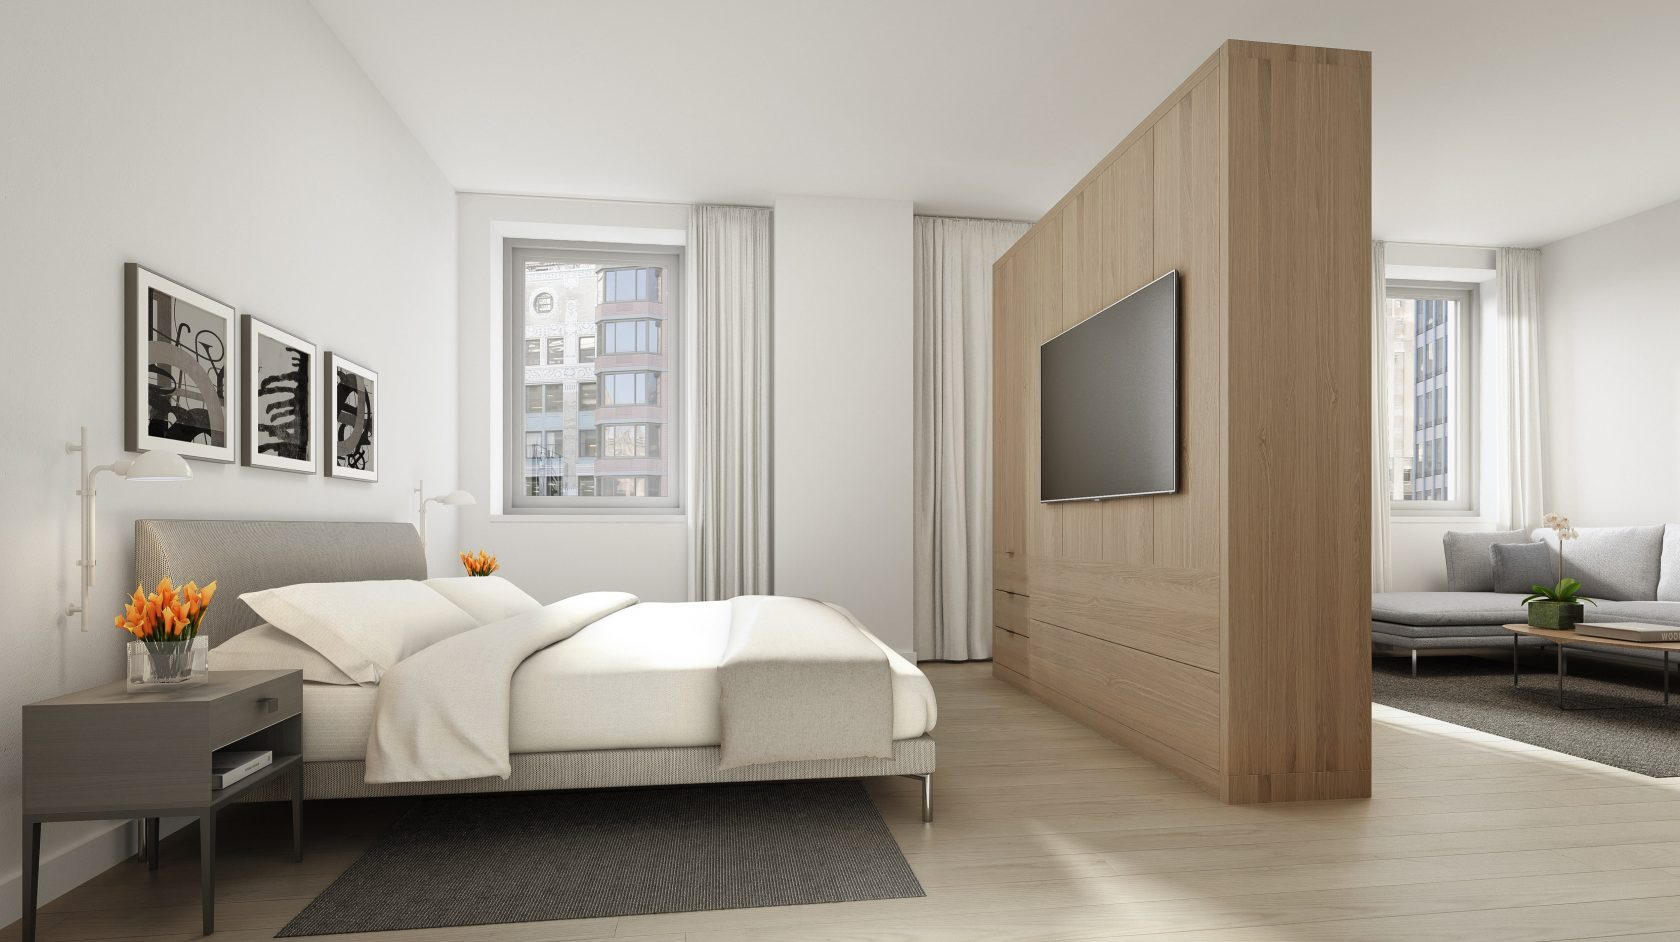 wall street extended stay hotel aka reserve now